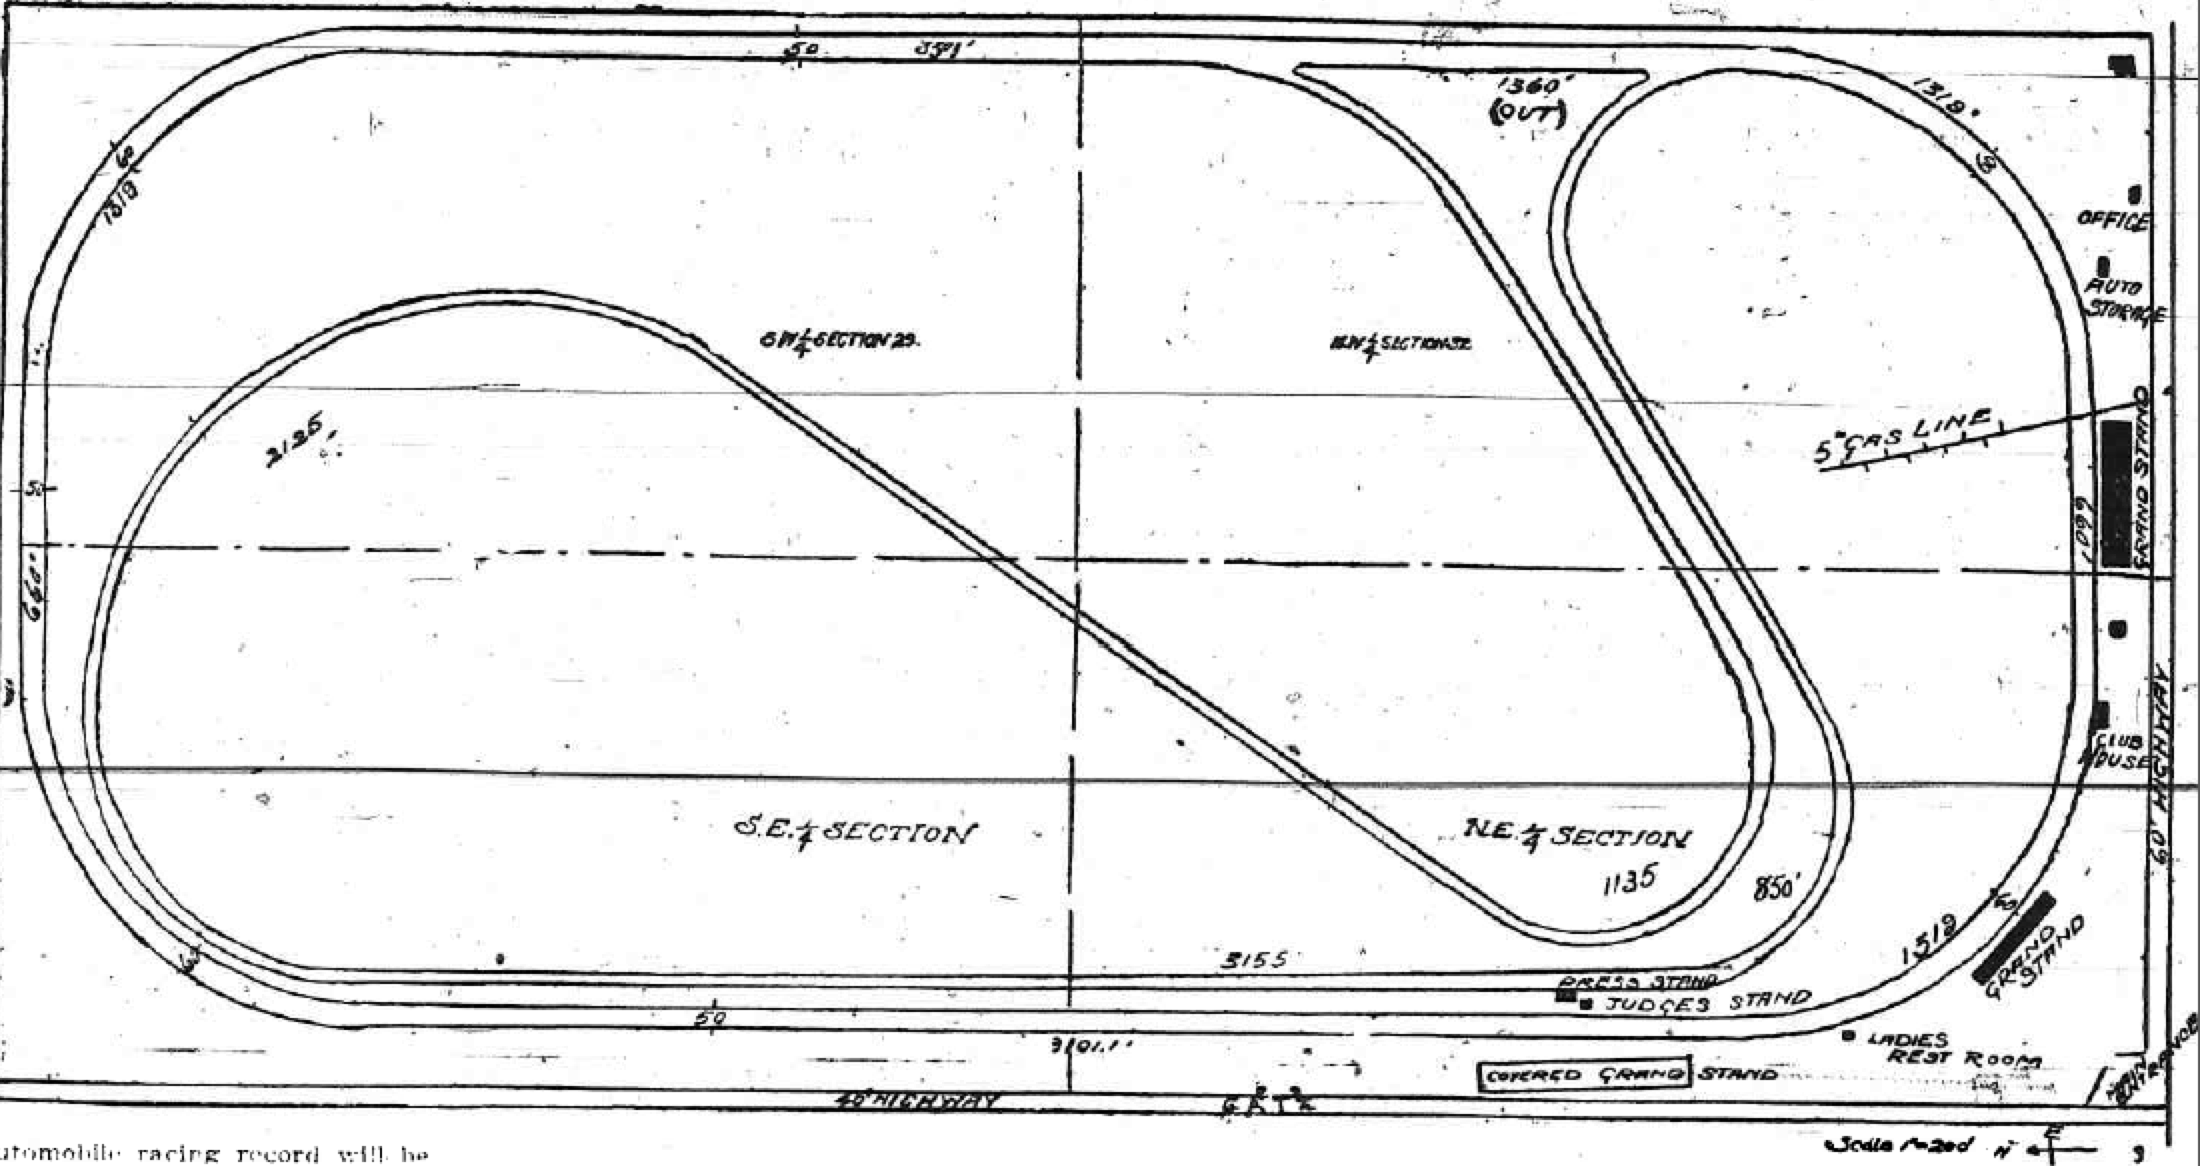 Blueprint of ims first super speedway imsconstructionplan040409 malvernweather Image collections